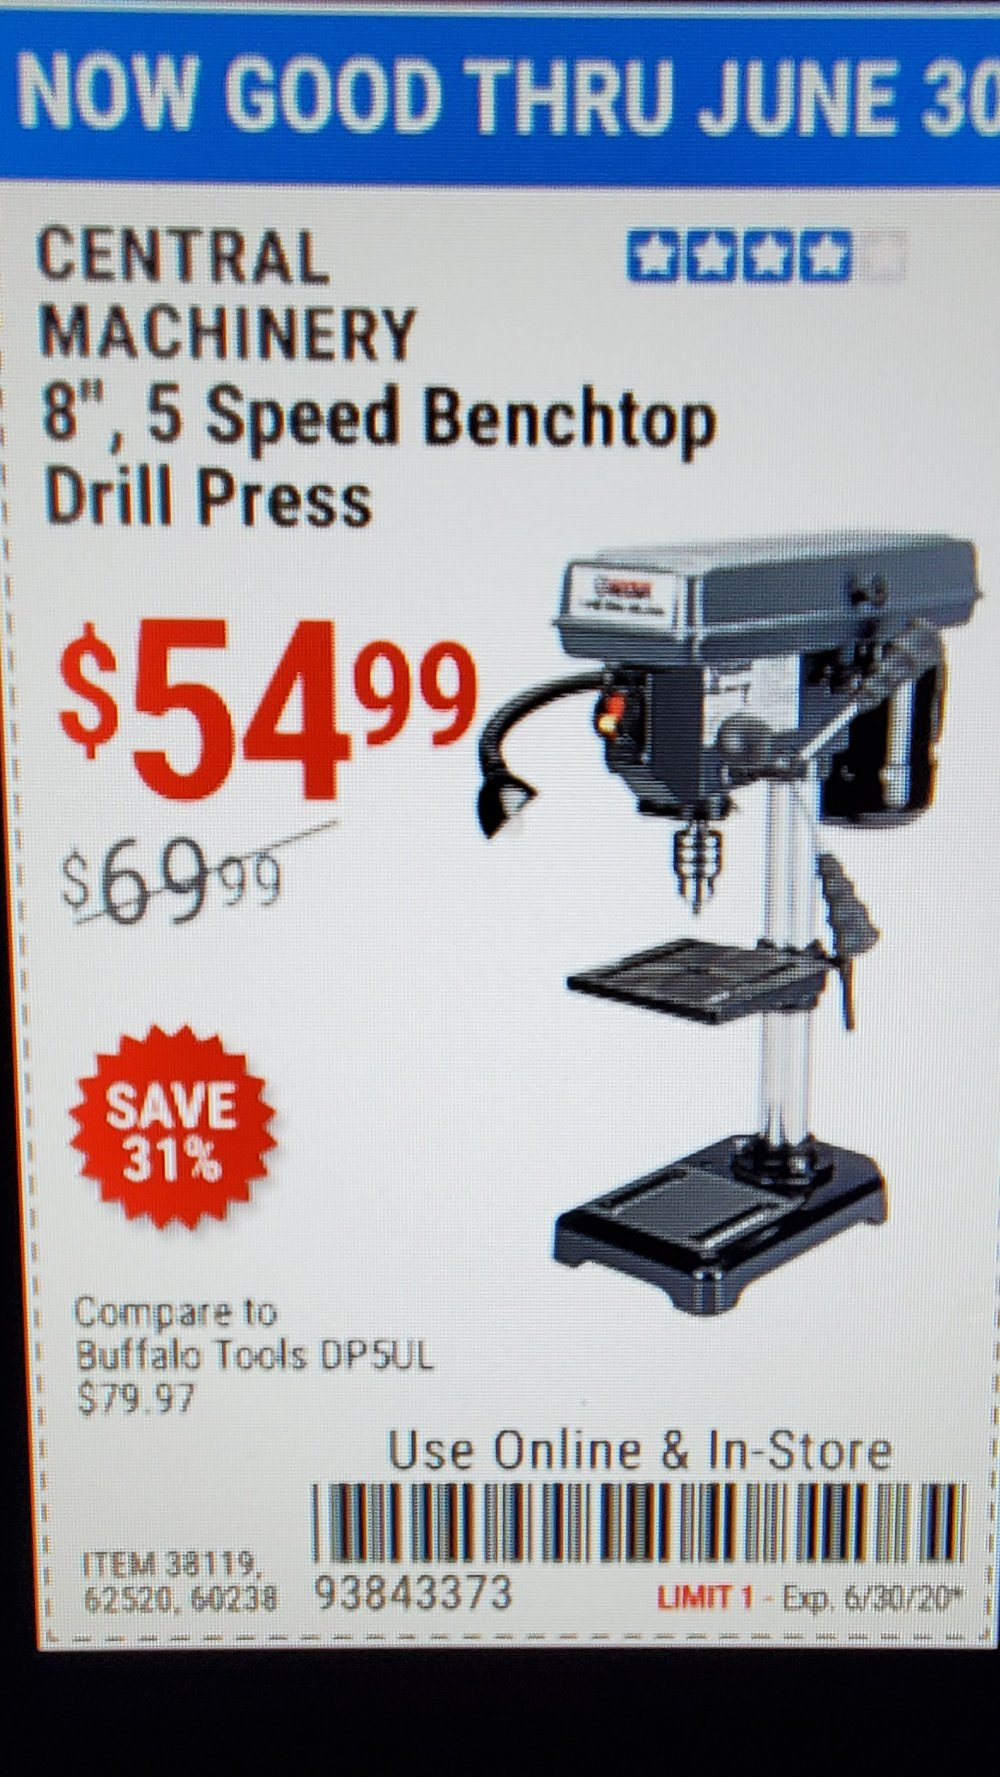 Harbor Freight Coupon, HF Coupons - Central Machinery 8